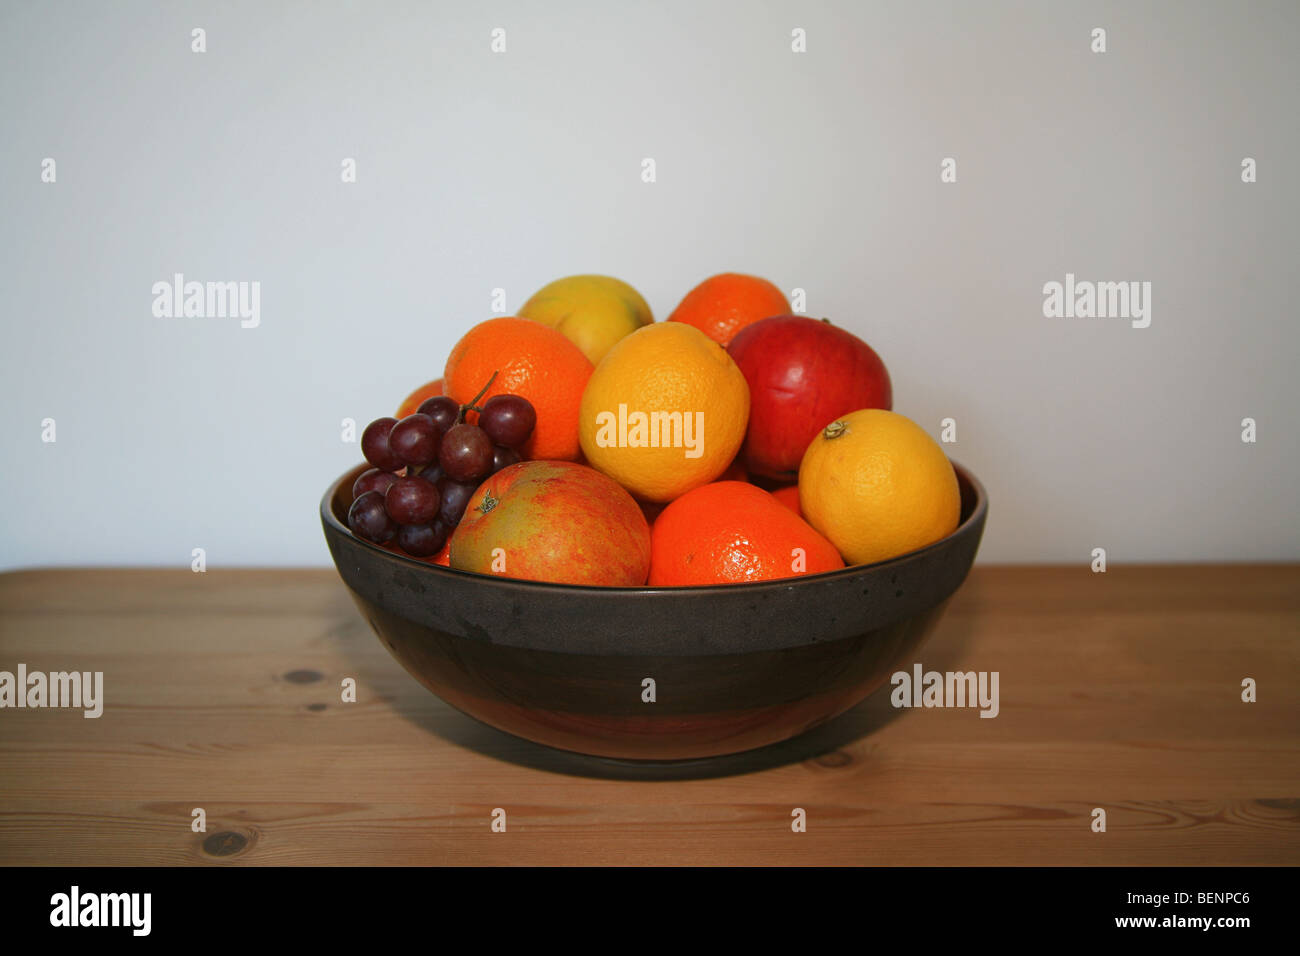 Still Life Study Of A Fruit Bowl On A Wooden Kitchen Table